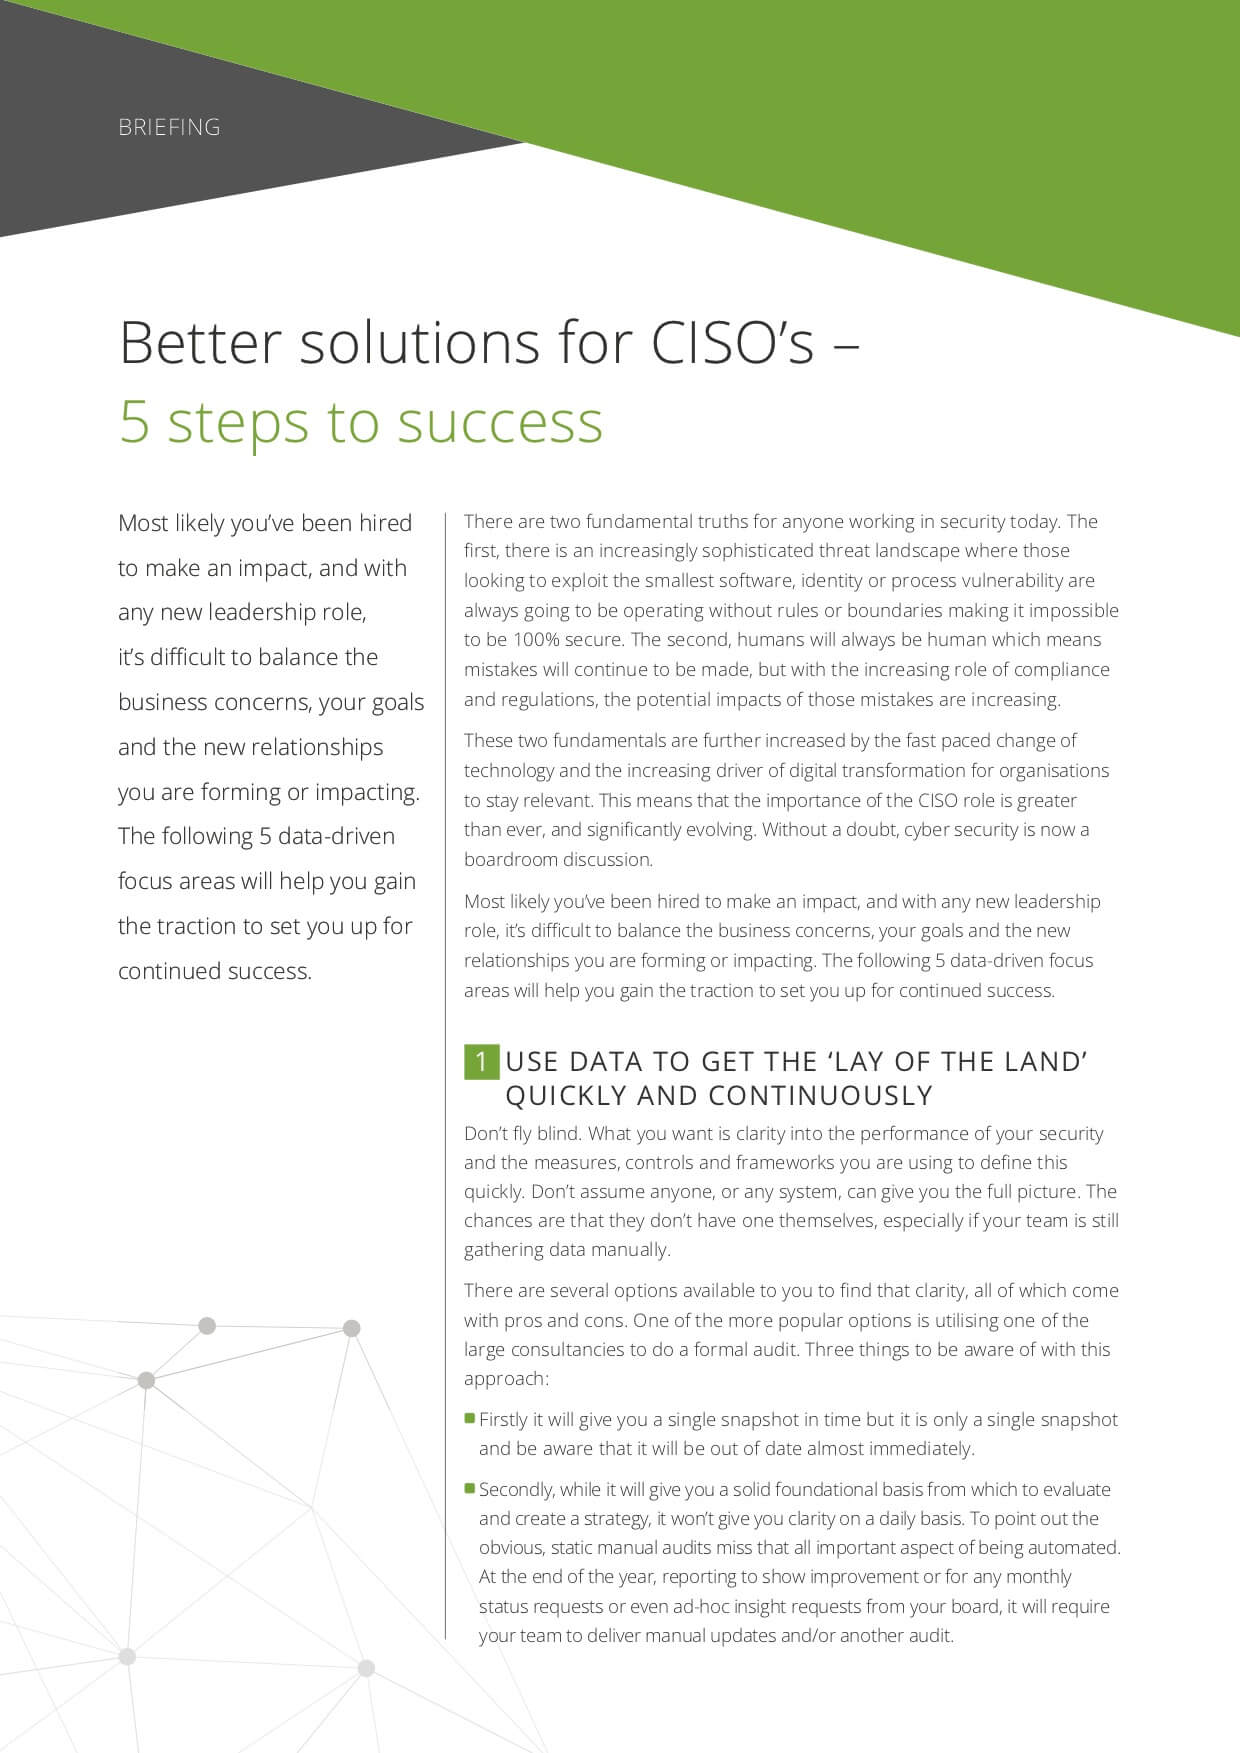 Briefing: Better solutions for CISOs – 5 steps to success